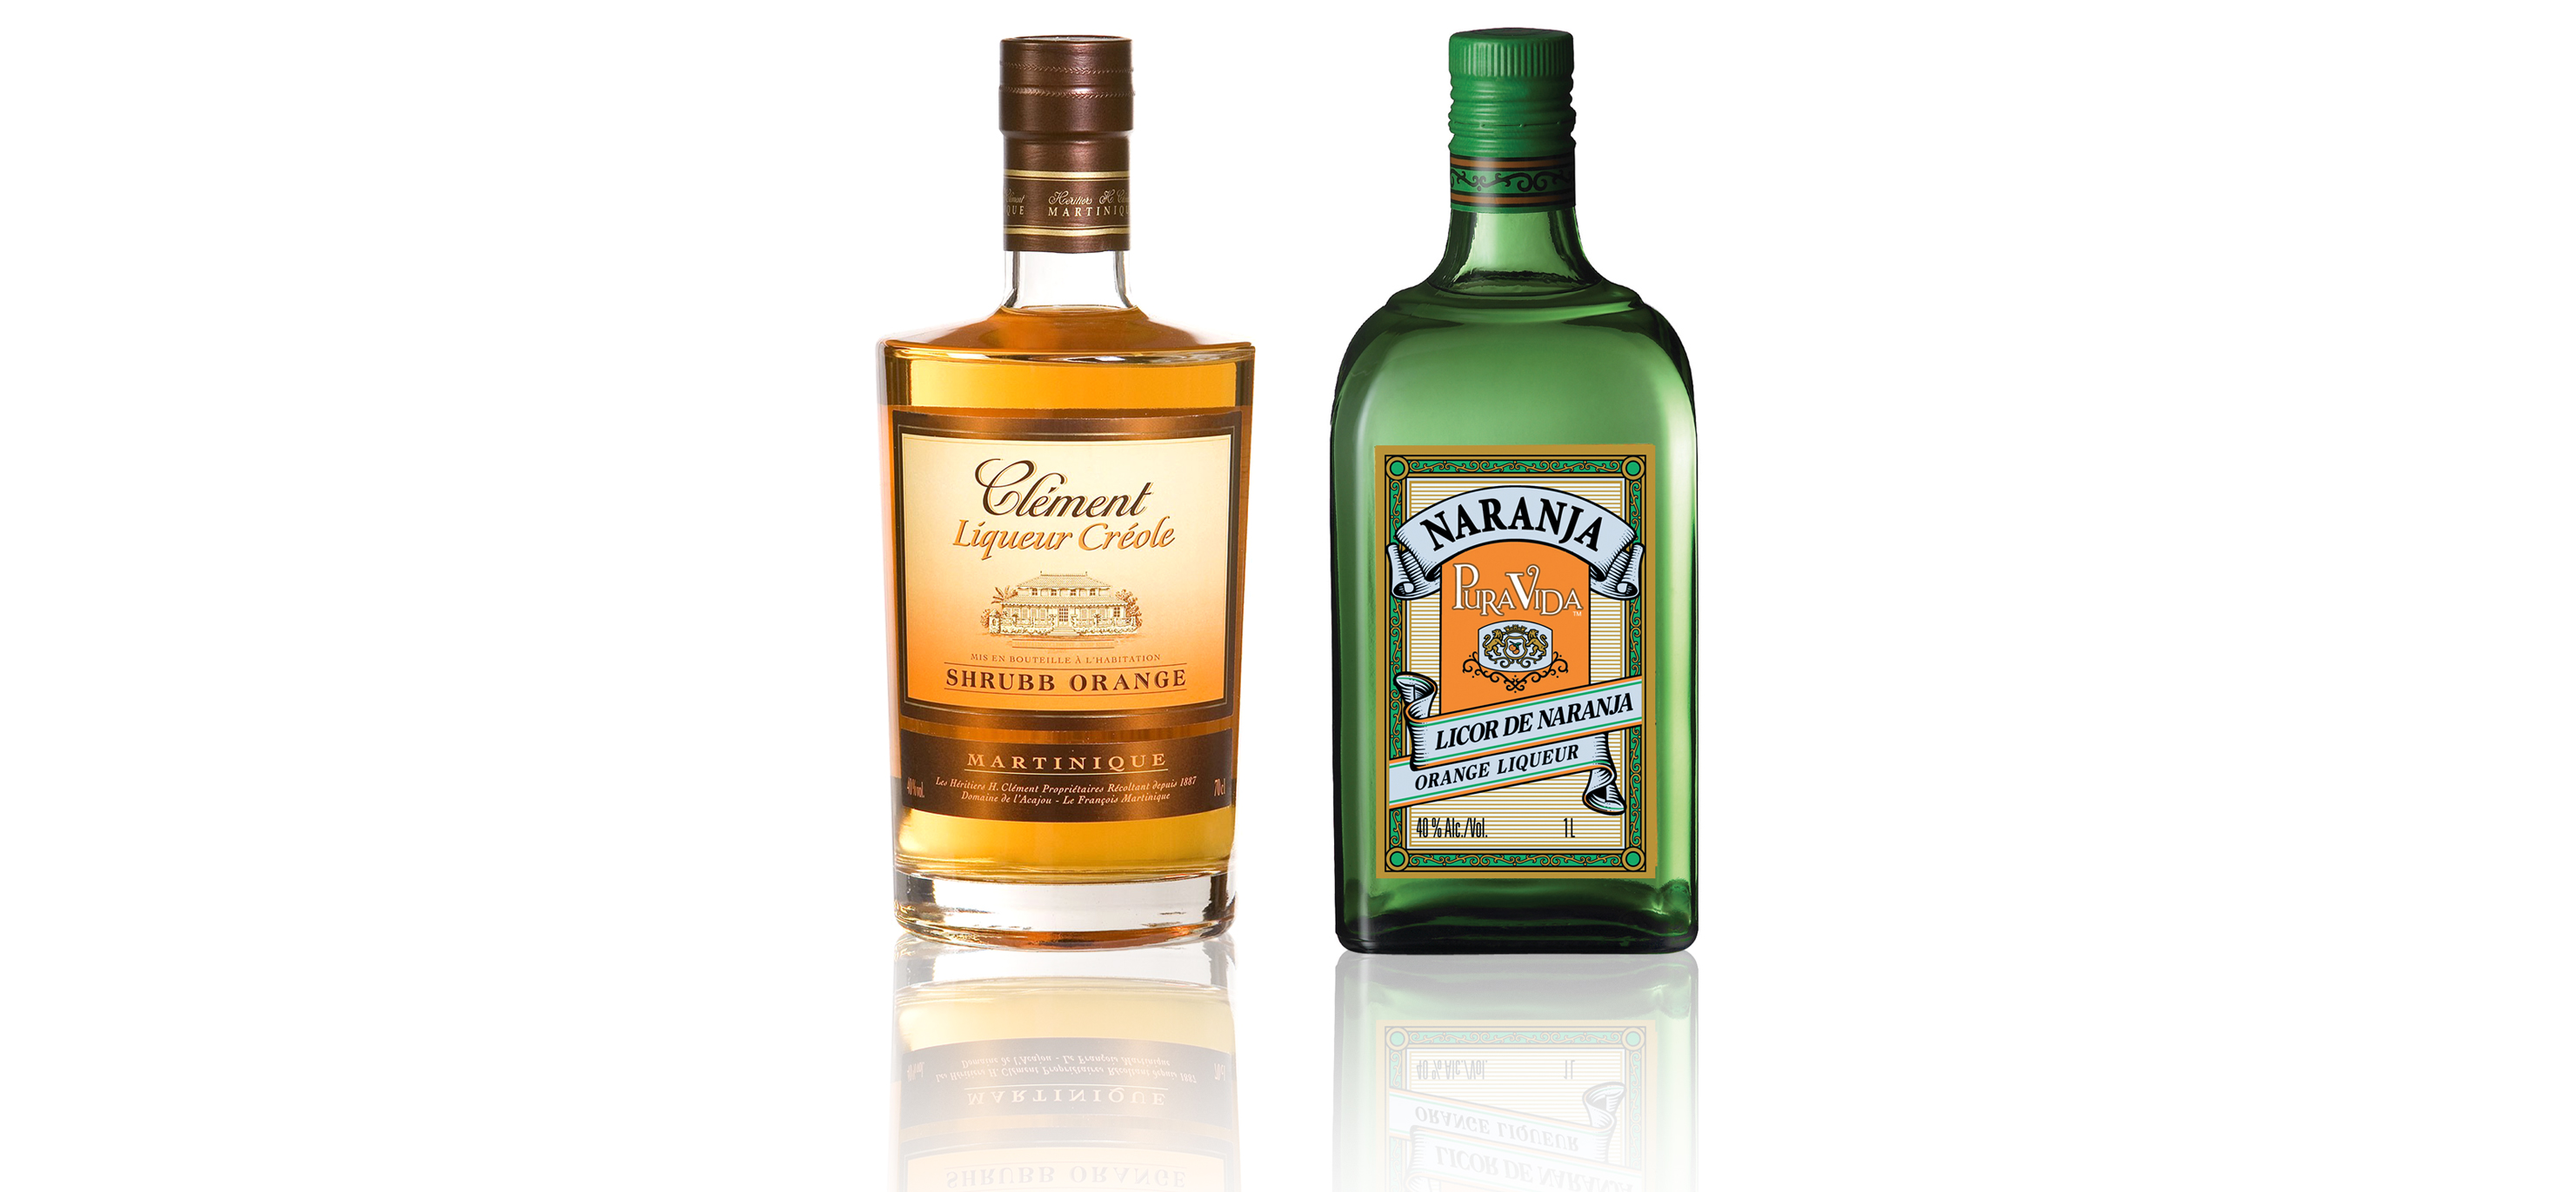 What Drinks Can You Make With Orange Liqueur